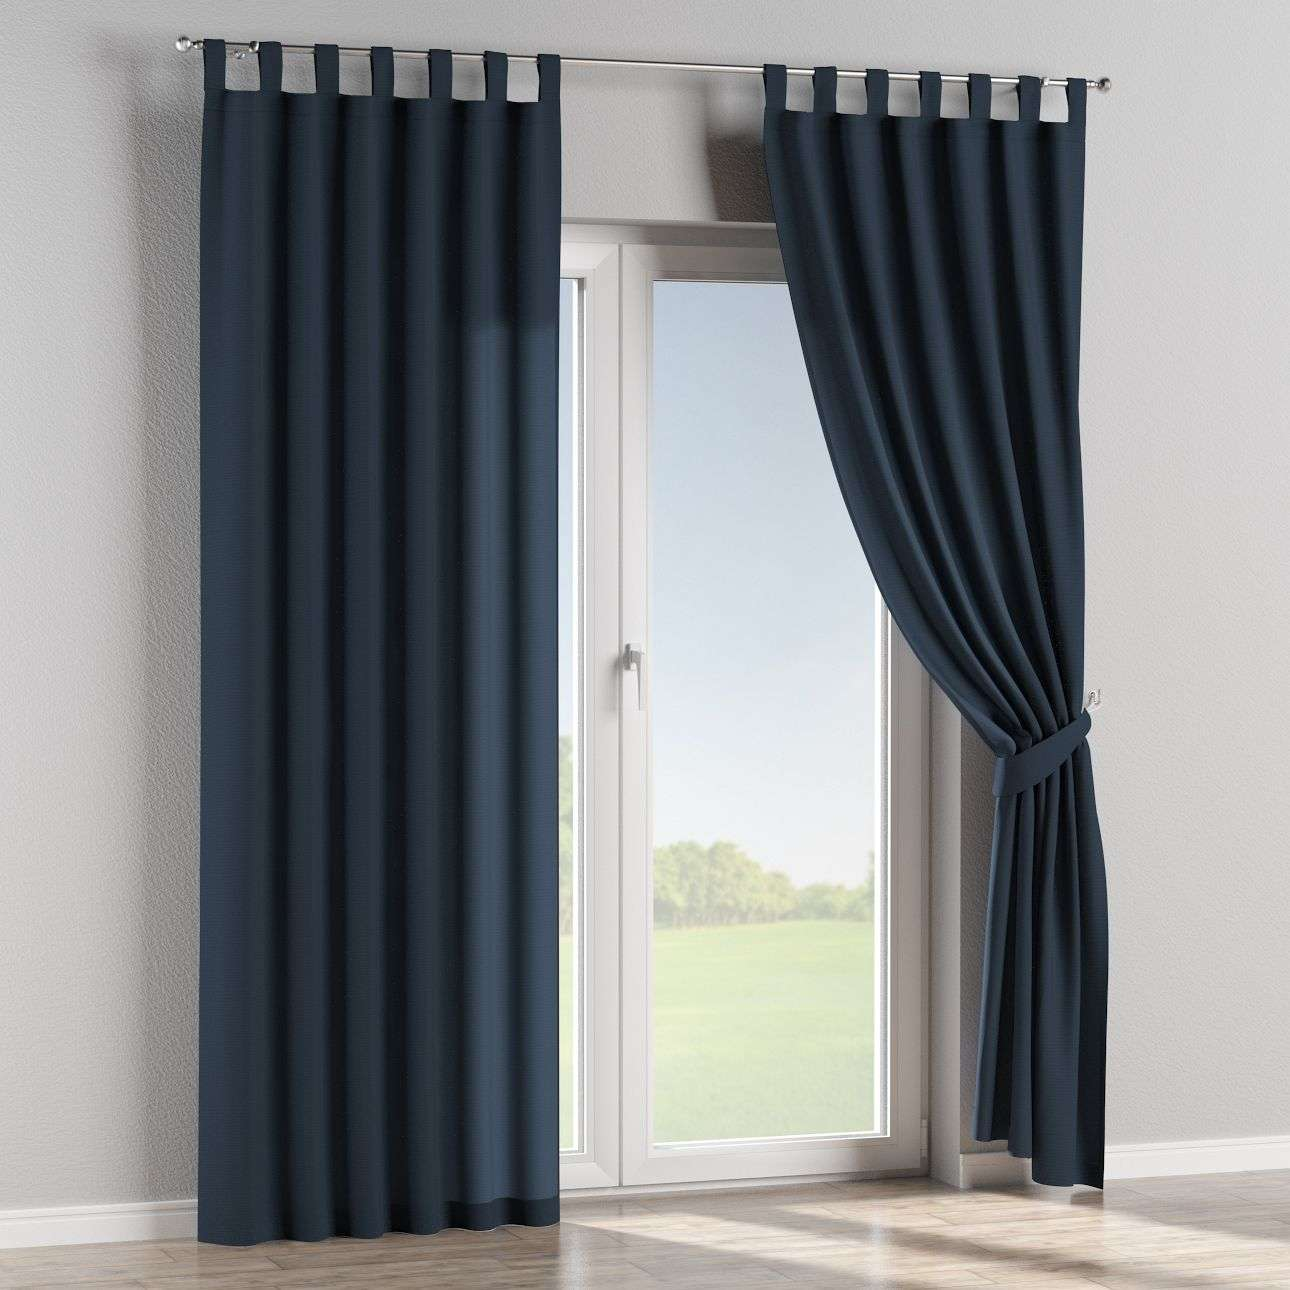 Tab top curtains 130 x 260 cm (51 x 102 inch) in collection Quadro, fabric: 136-04